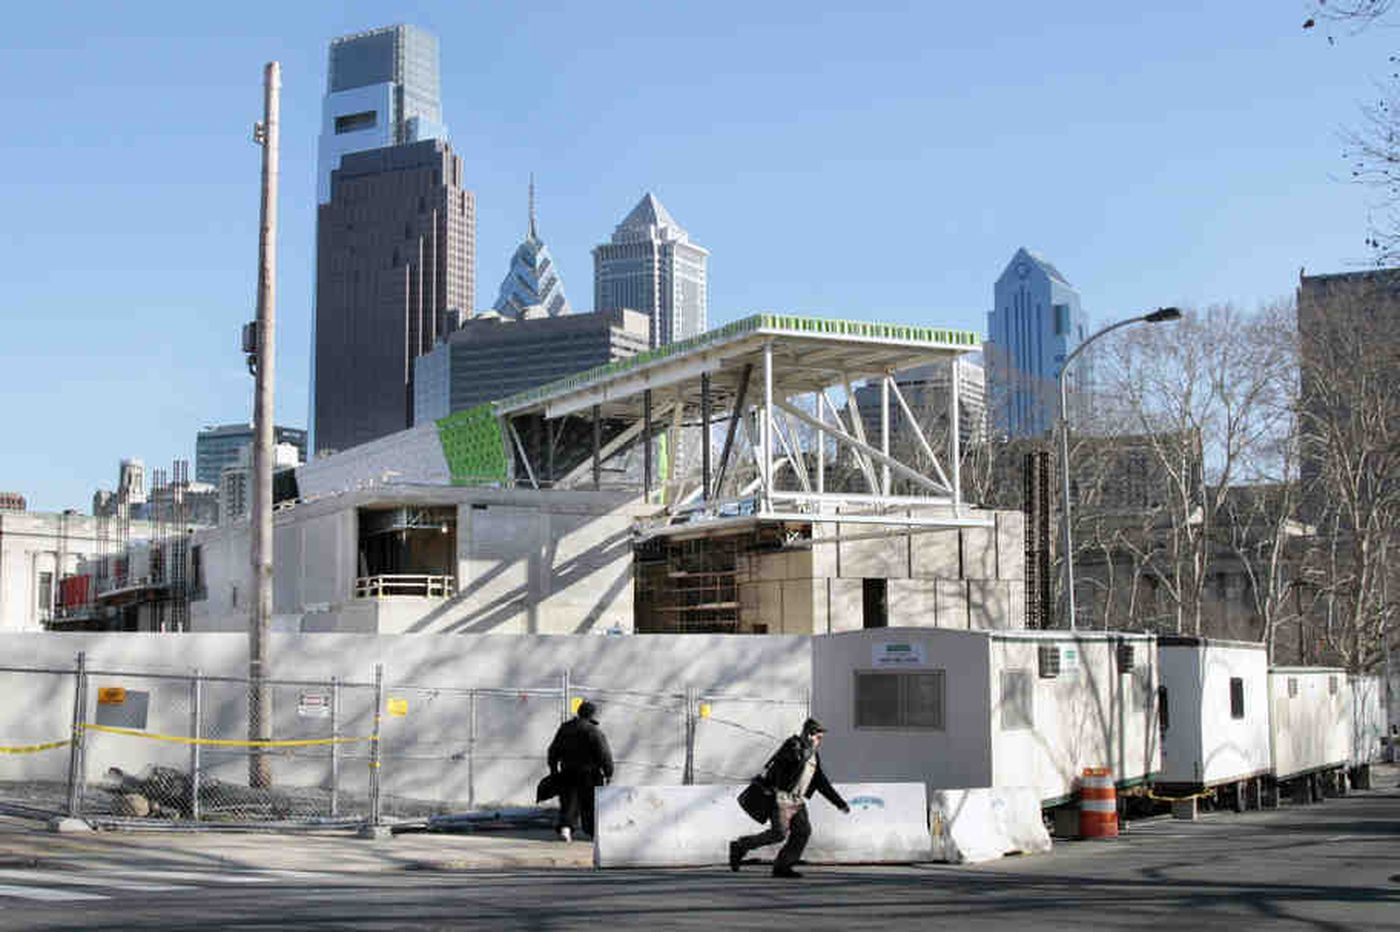 Pa. and Barnes must explain why relocation case should not be reopened